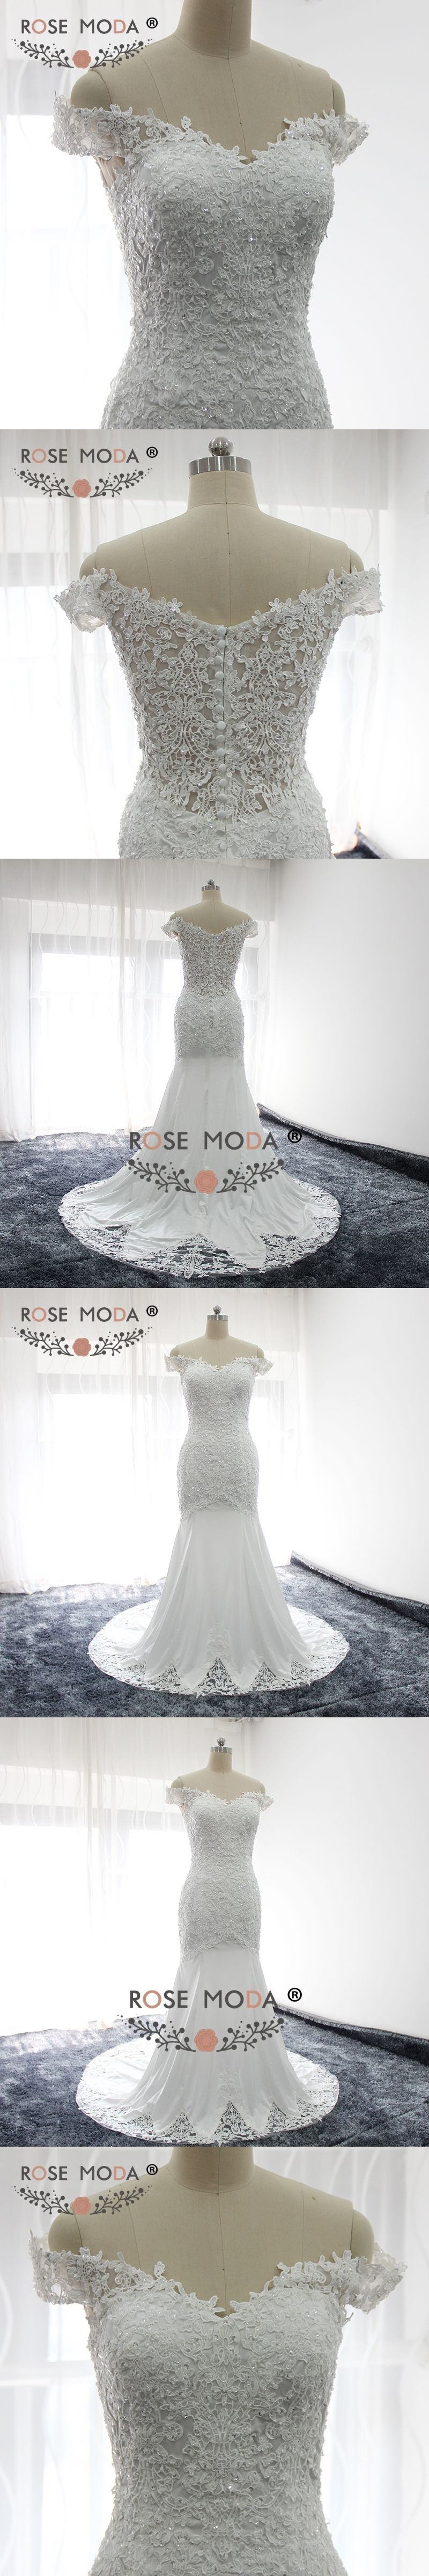 Rose moda off shoulder lace boho wedding dress mermaid wedding